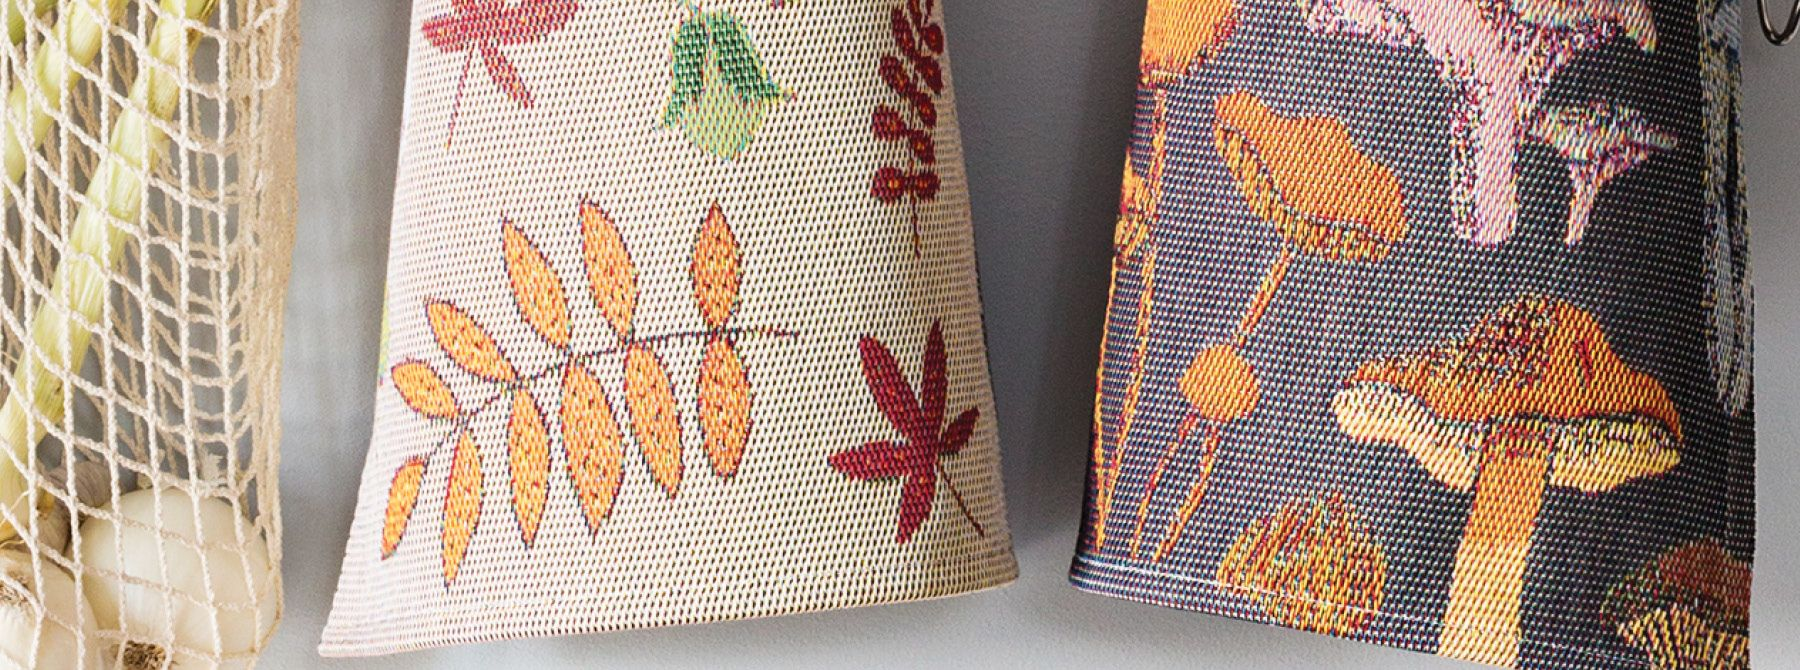 Tea Towels - Ekelund Weavers Sweden